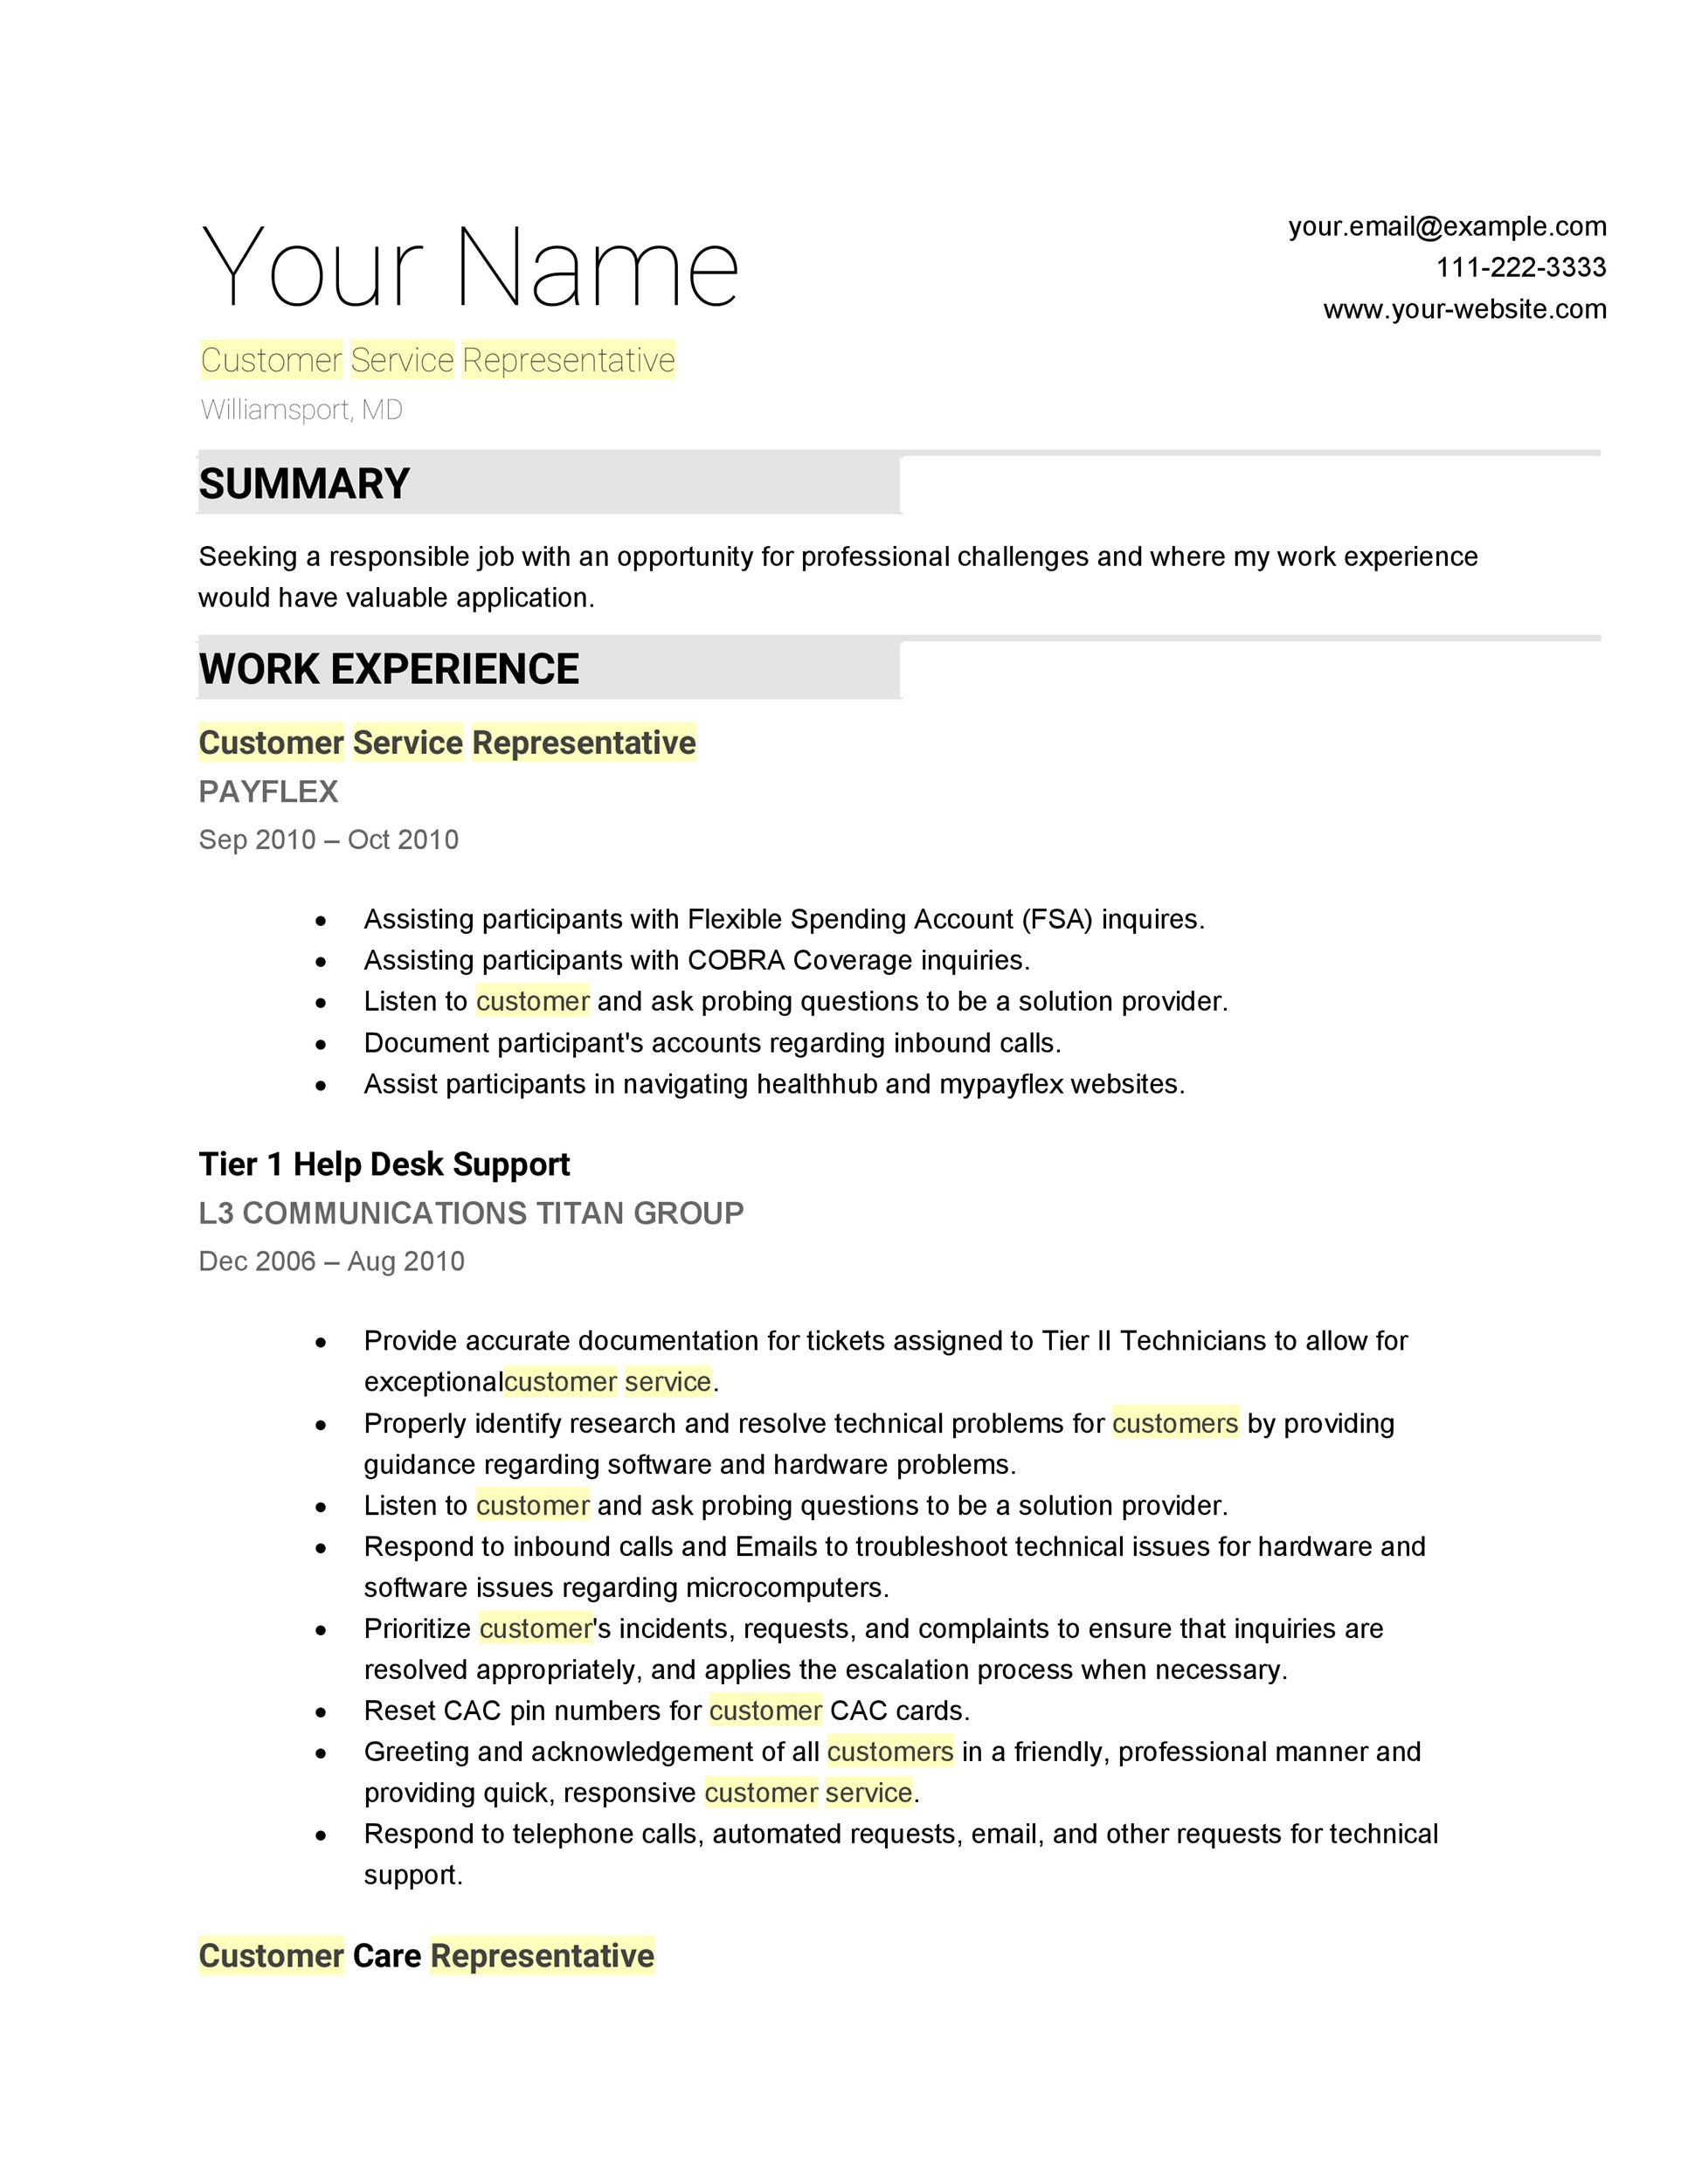 30+ Customer Service Resume Examples - Template Lab - sample resume for customer service position